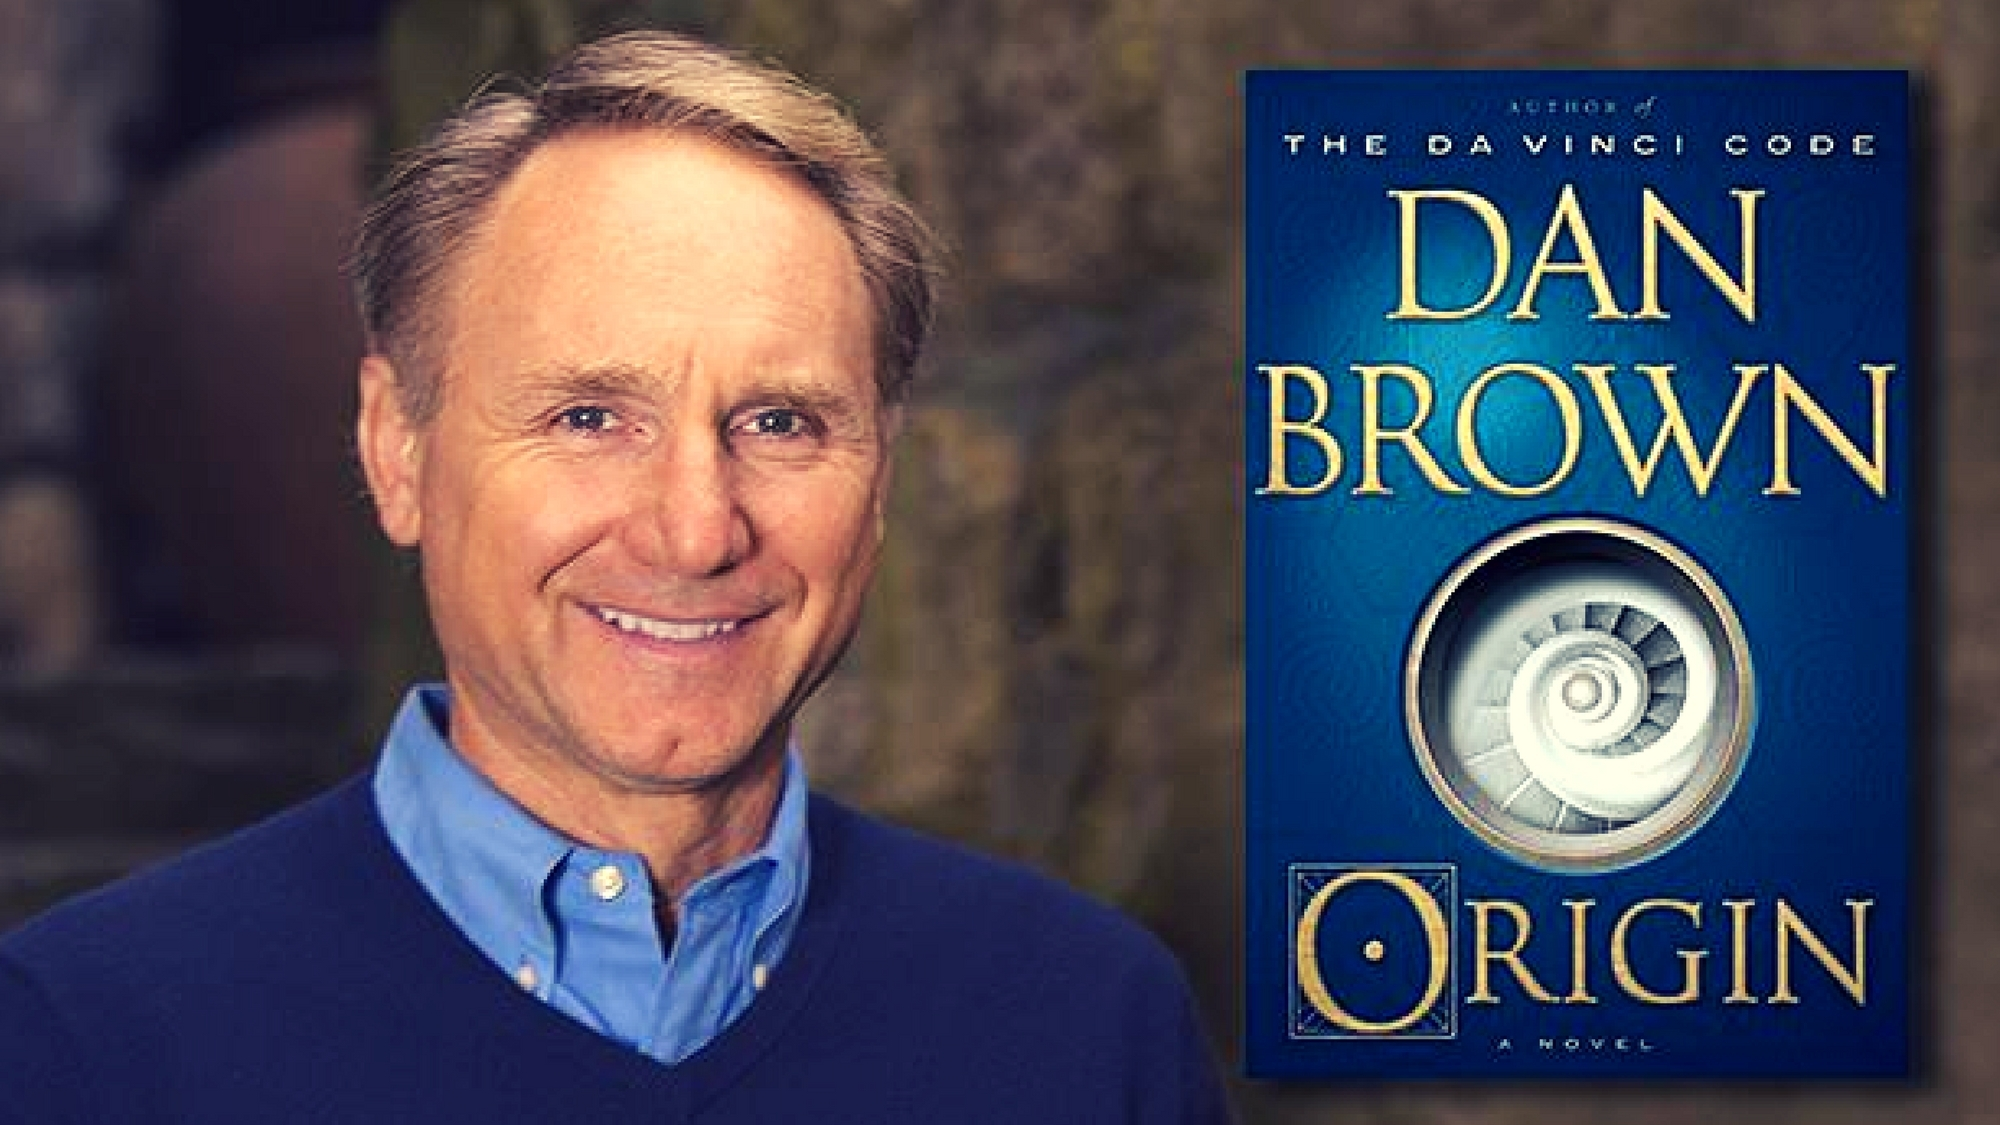 Origin A Novel Read PDF EPUB Download Dan Brown - Origin